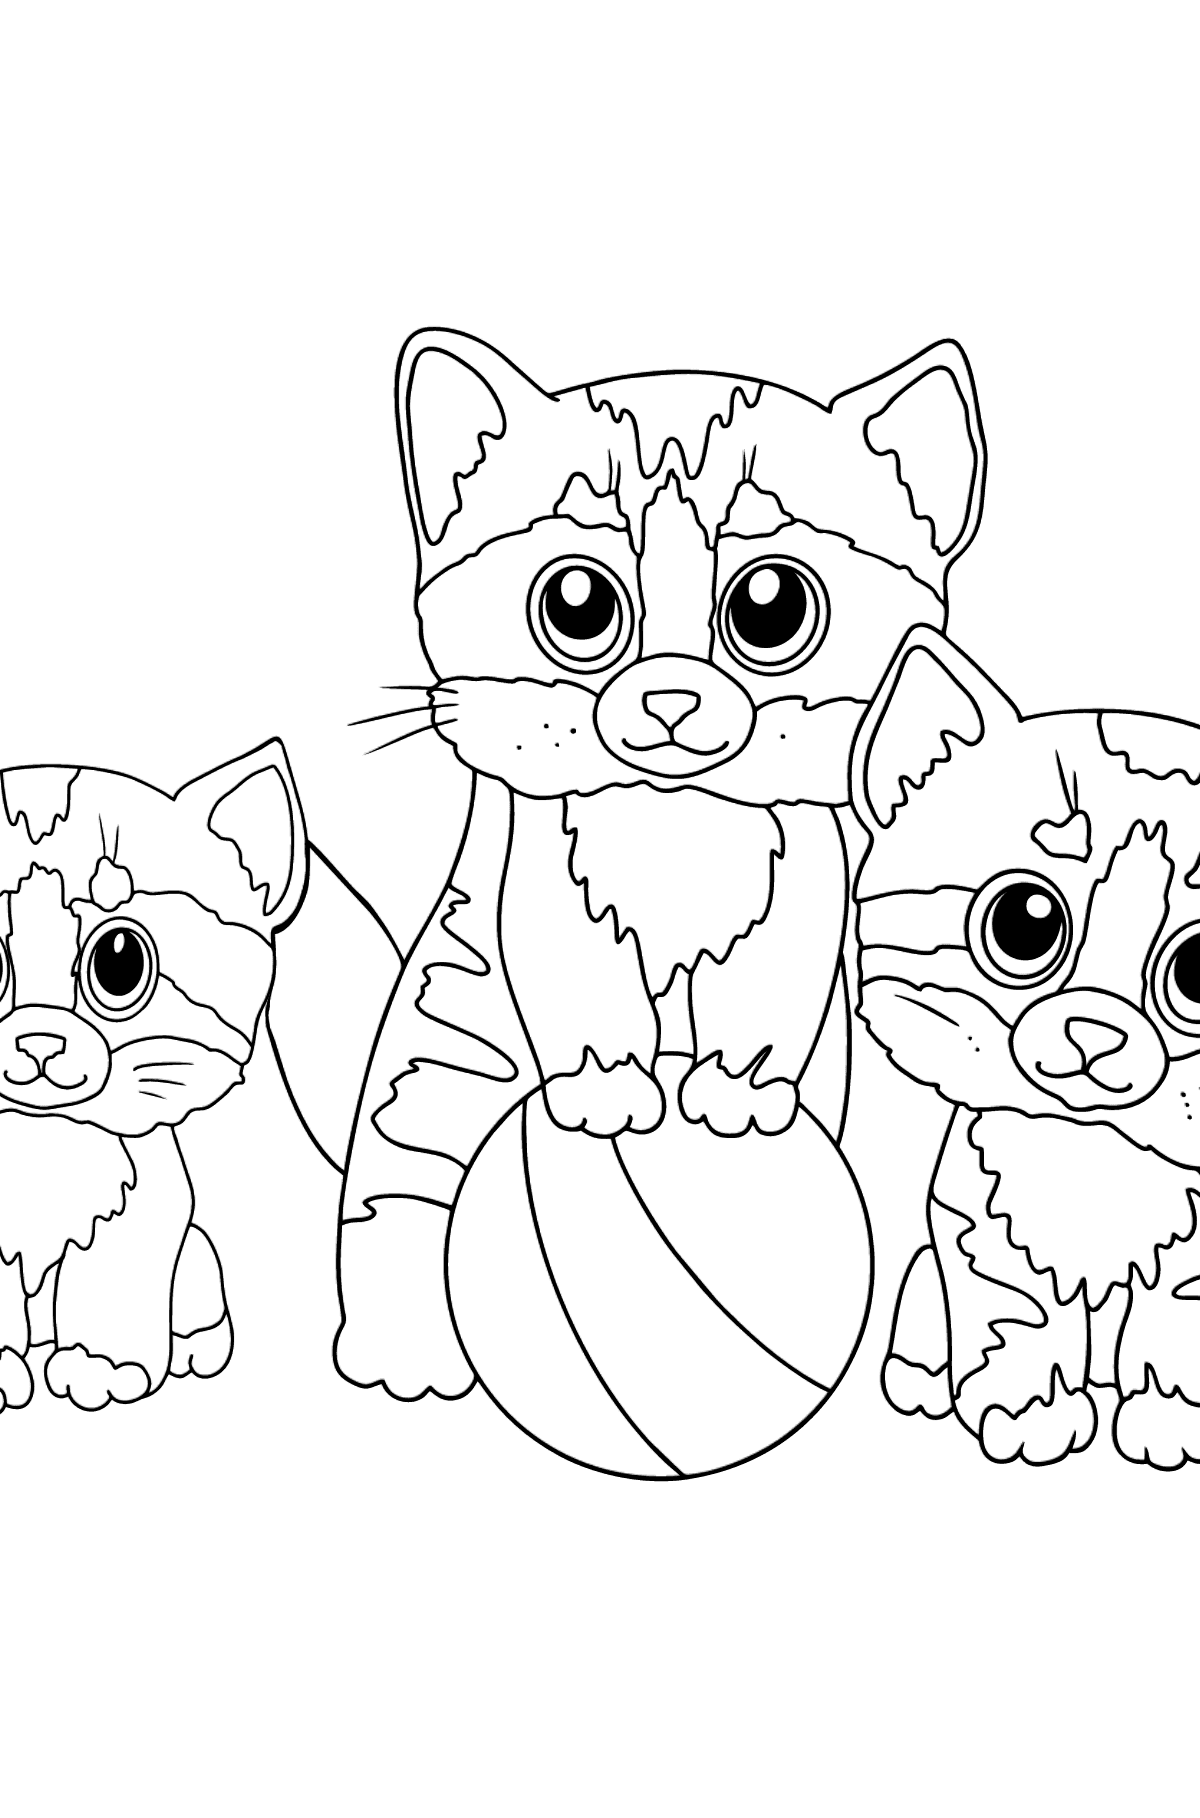 Coloring Page - Three Kittens are Playing Together with a Ball  - Coloring Pages for Kids